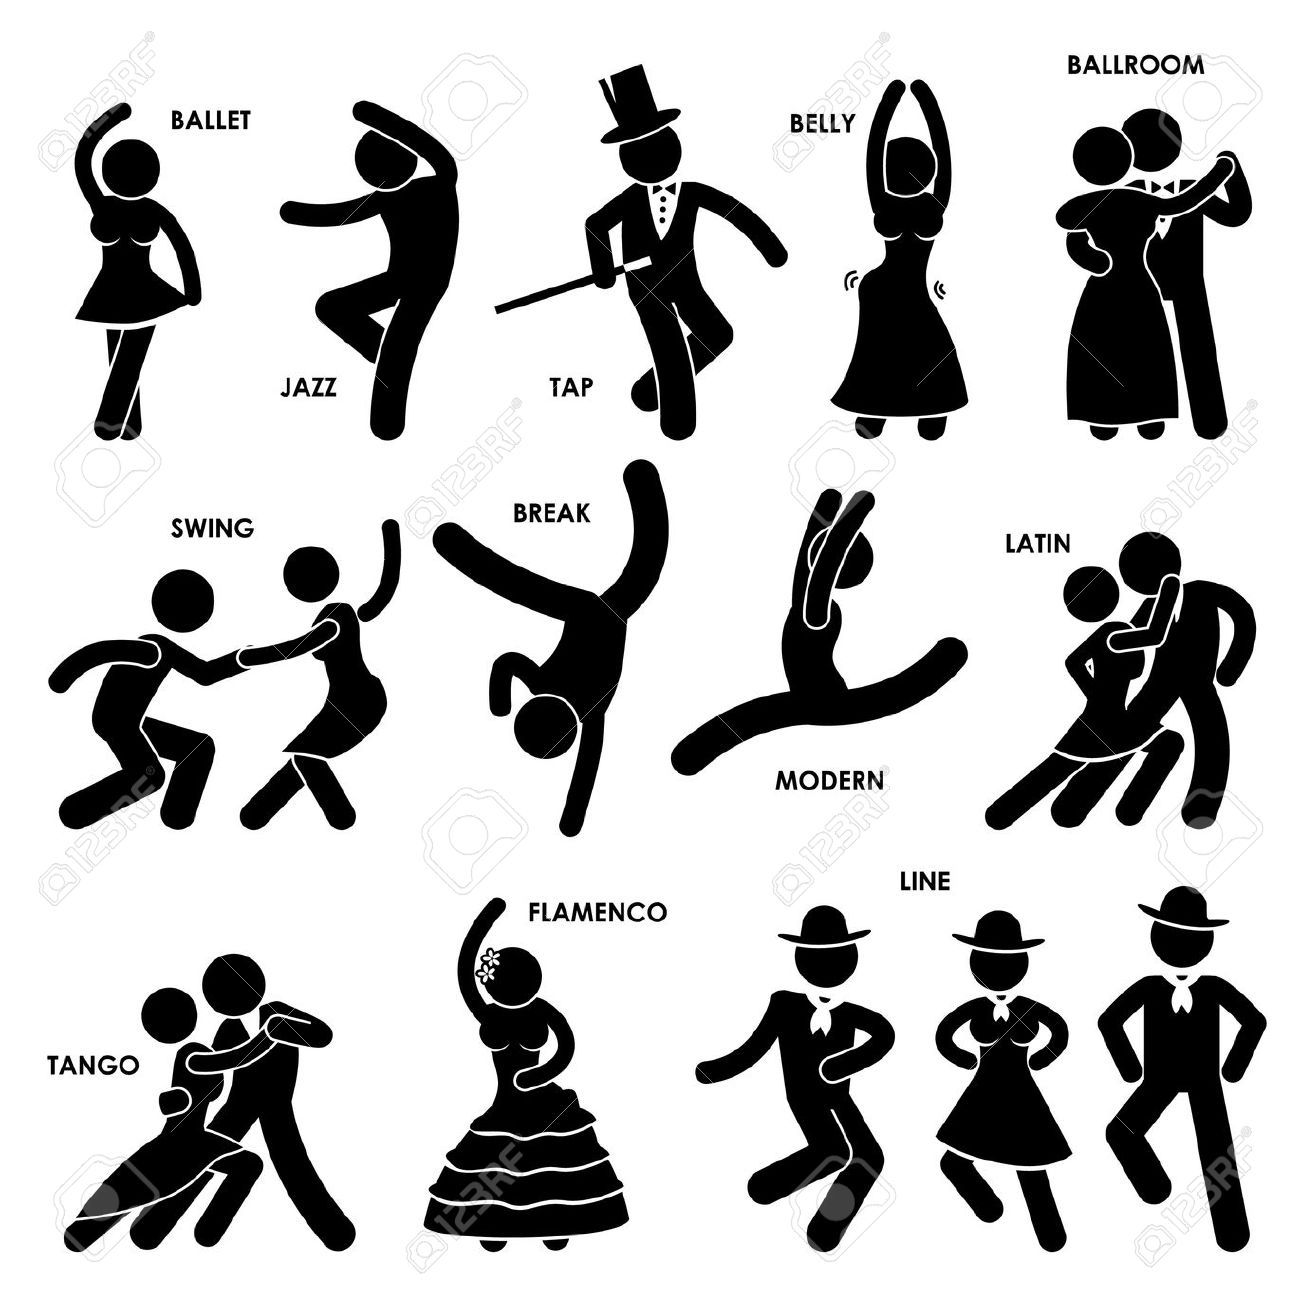 hight resolution of dance stock vector illustration and royalty free dance clipart